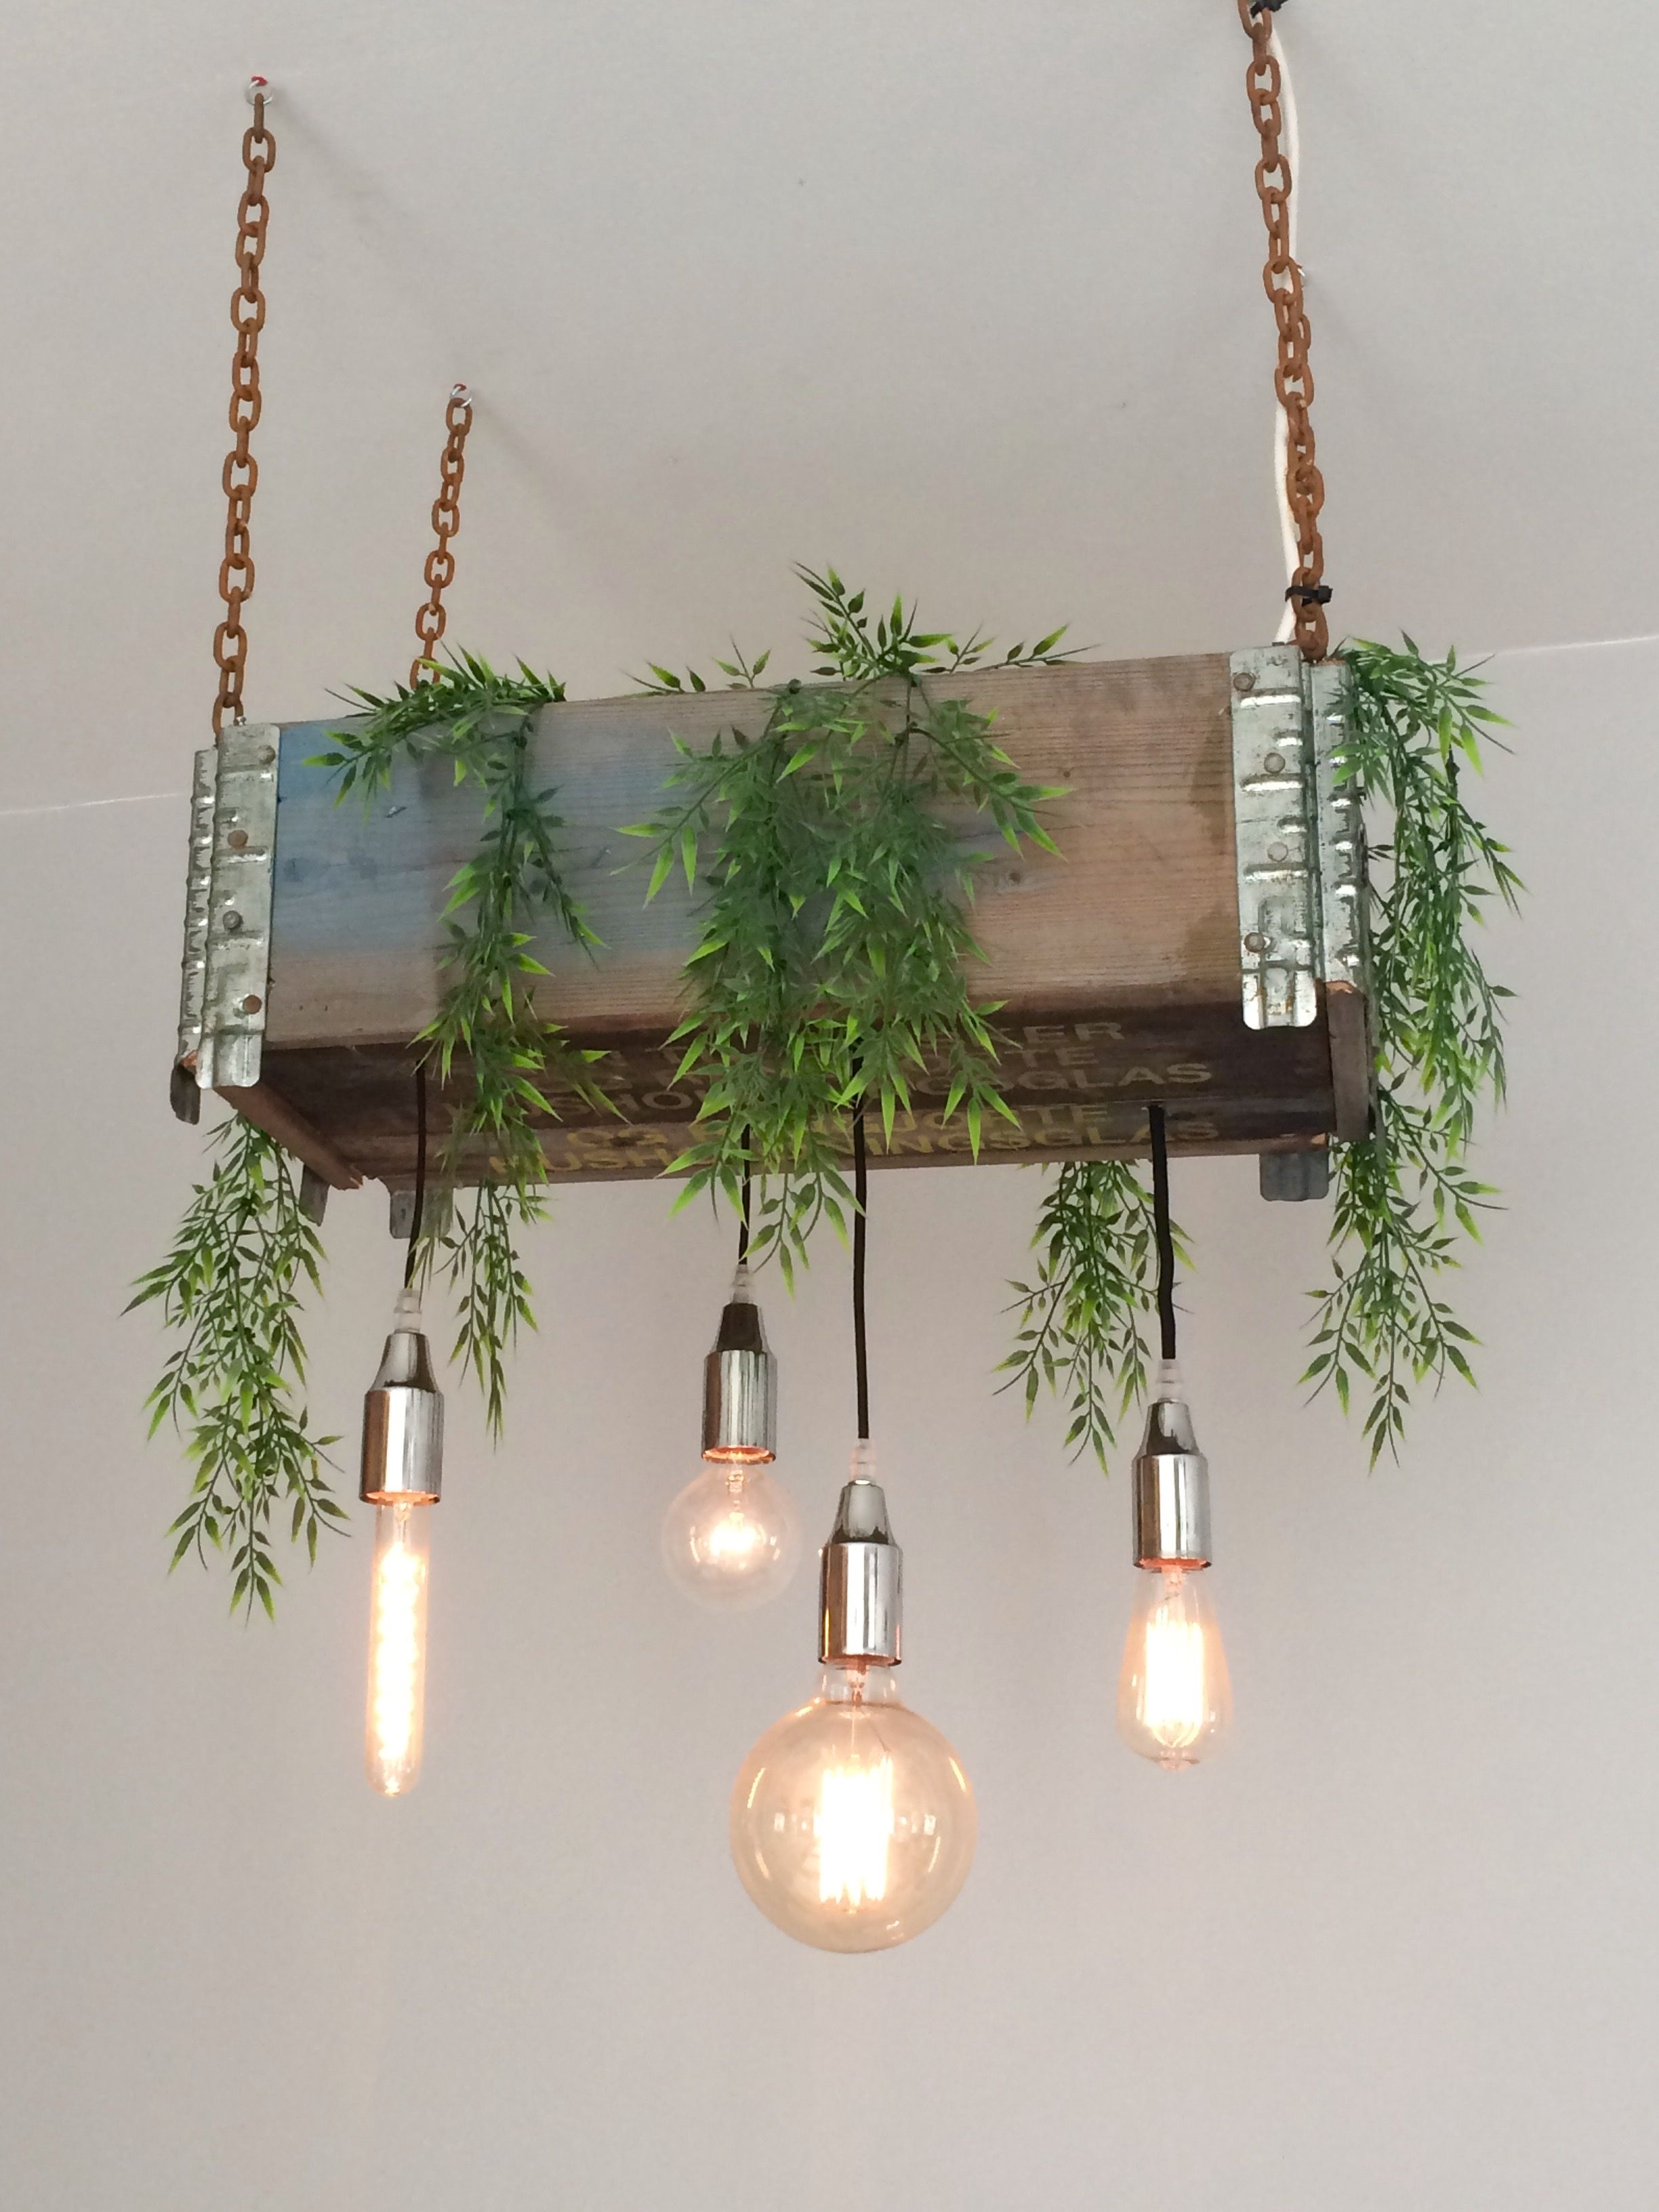 Pendant Copper Chains Lamp Hanging Plant Up Cycled Diy Cafe Green Interior Decor Wood Branding Photo Stine Nordskov Hansen Fantastic